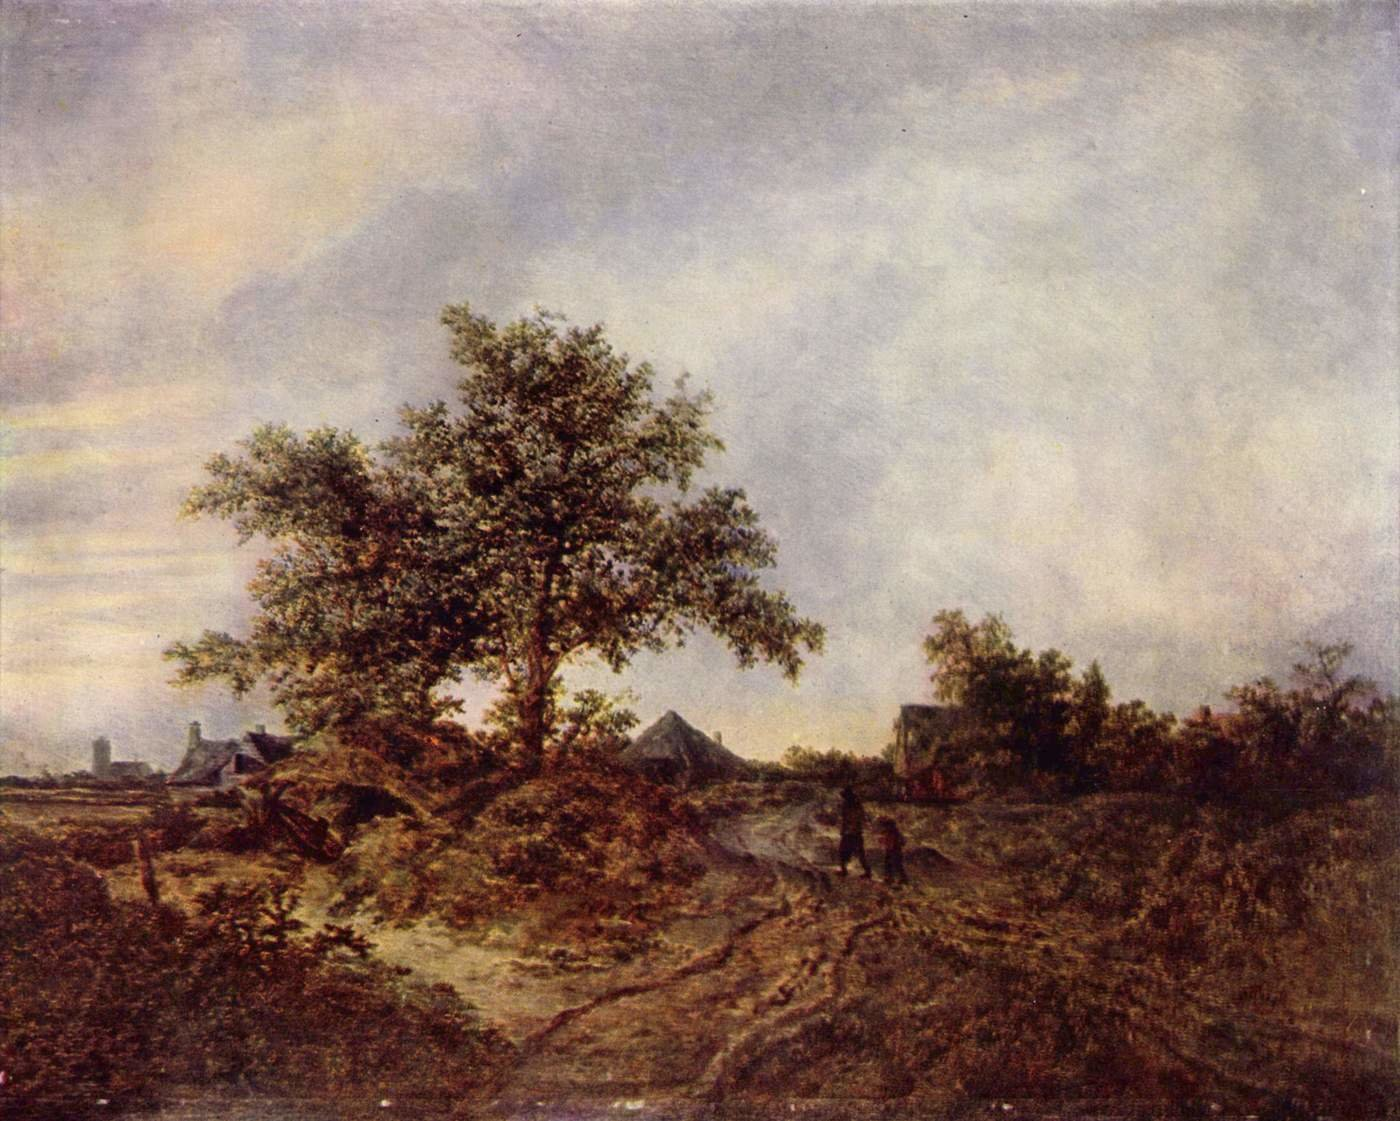 Jacob Van Ruisdael background